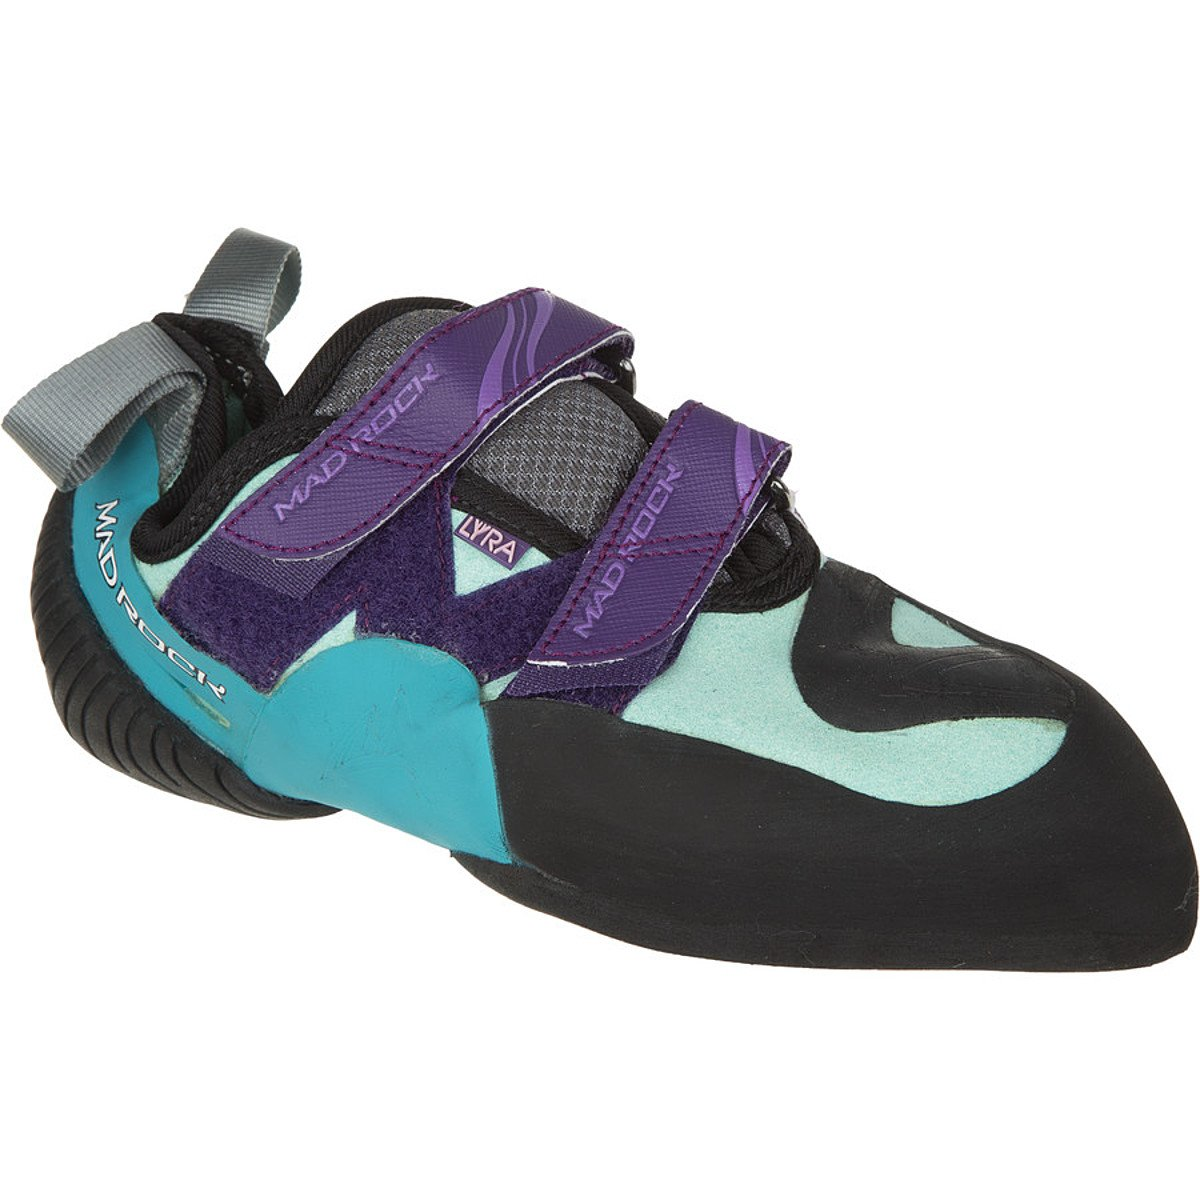 Mad Rock Lyra Climbing Shoes - Women's B00L8BVHUW 4.5 D(M) US|Black/Purple/Turquiose